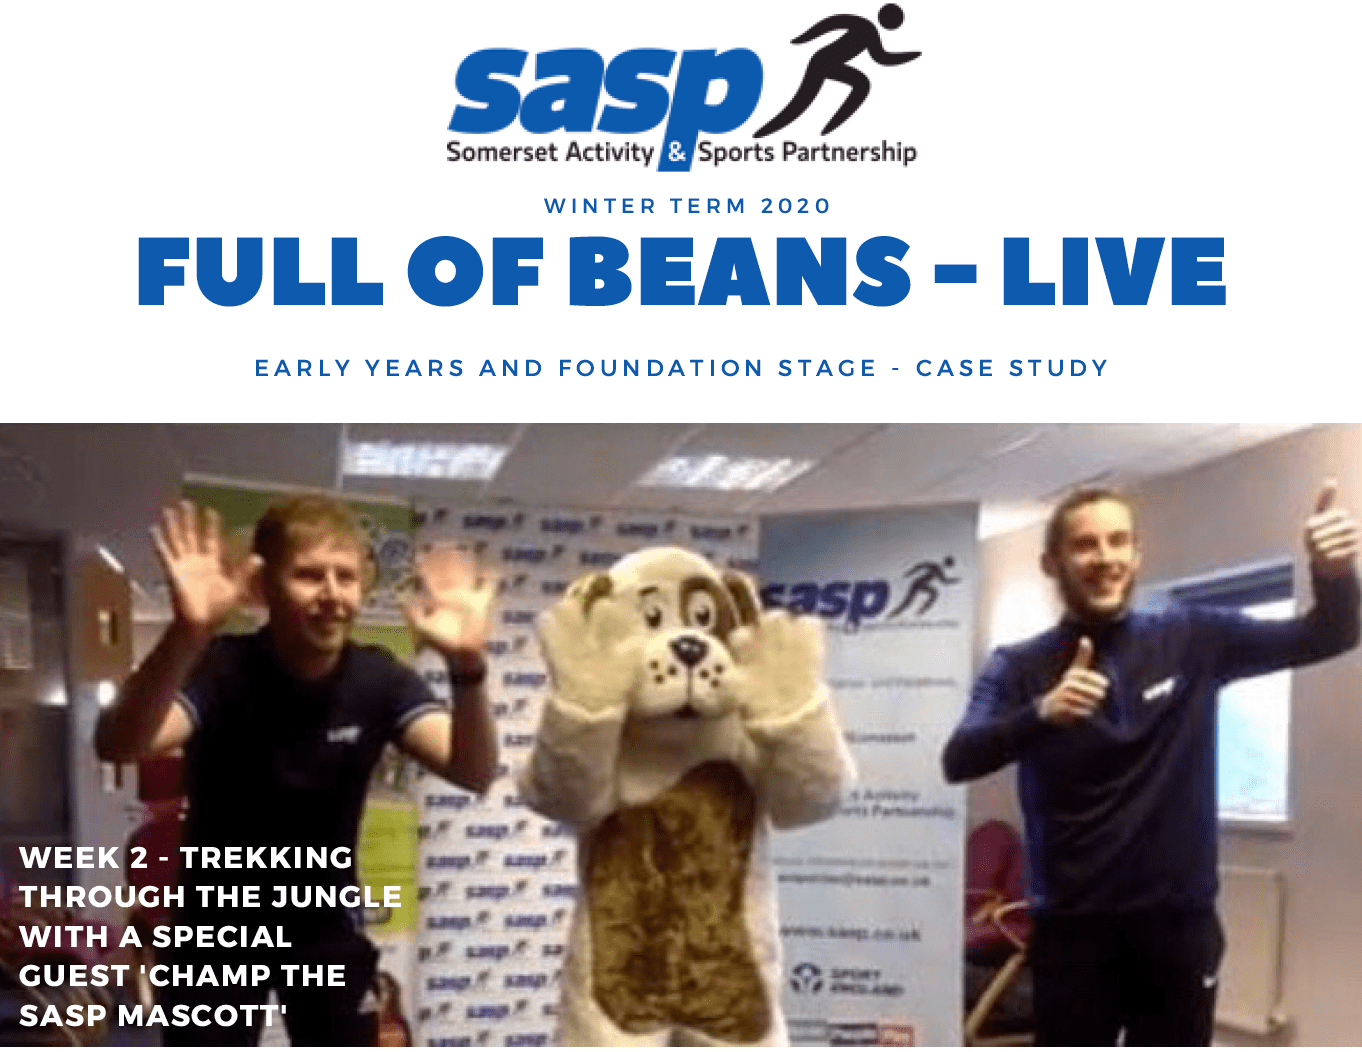 Champ the SASP mascot dog and two male instructions doing activities as part of live sessions